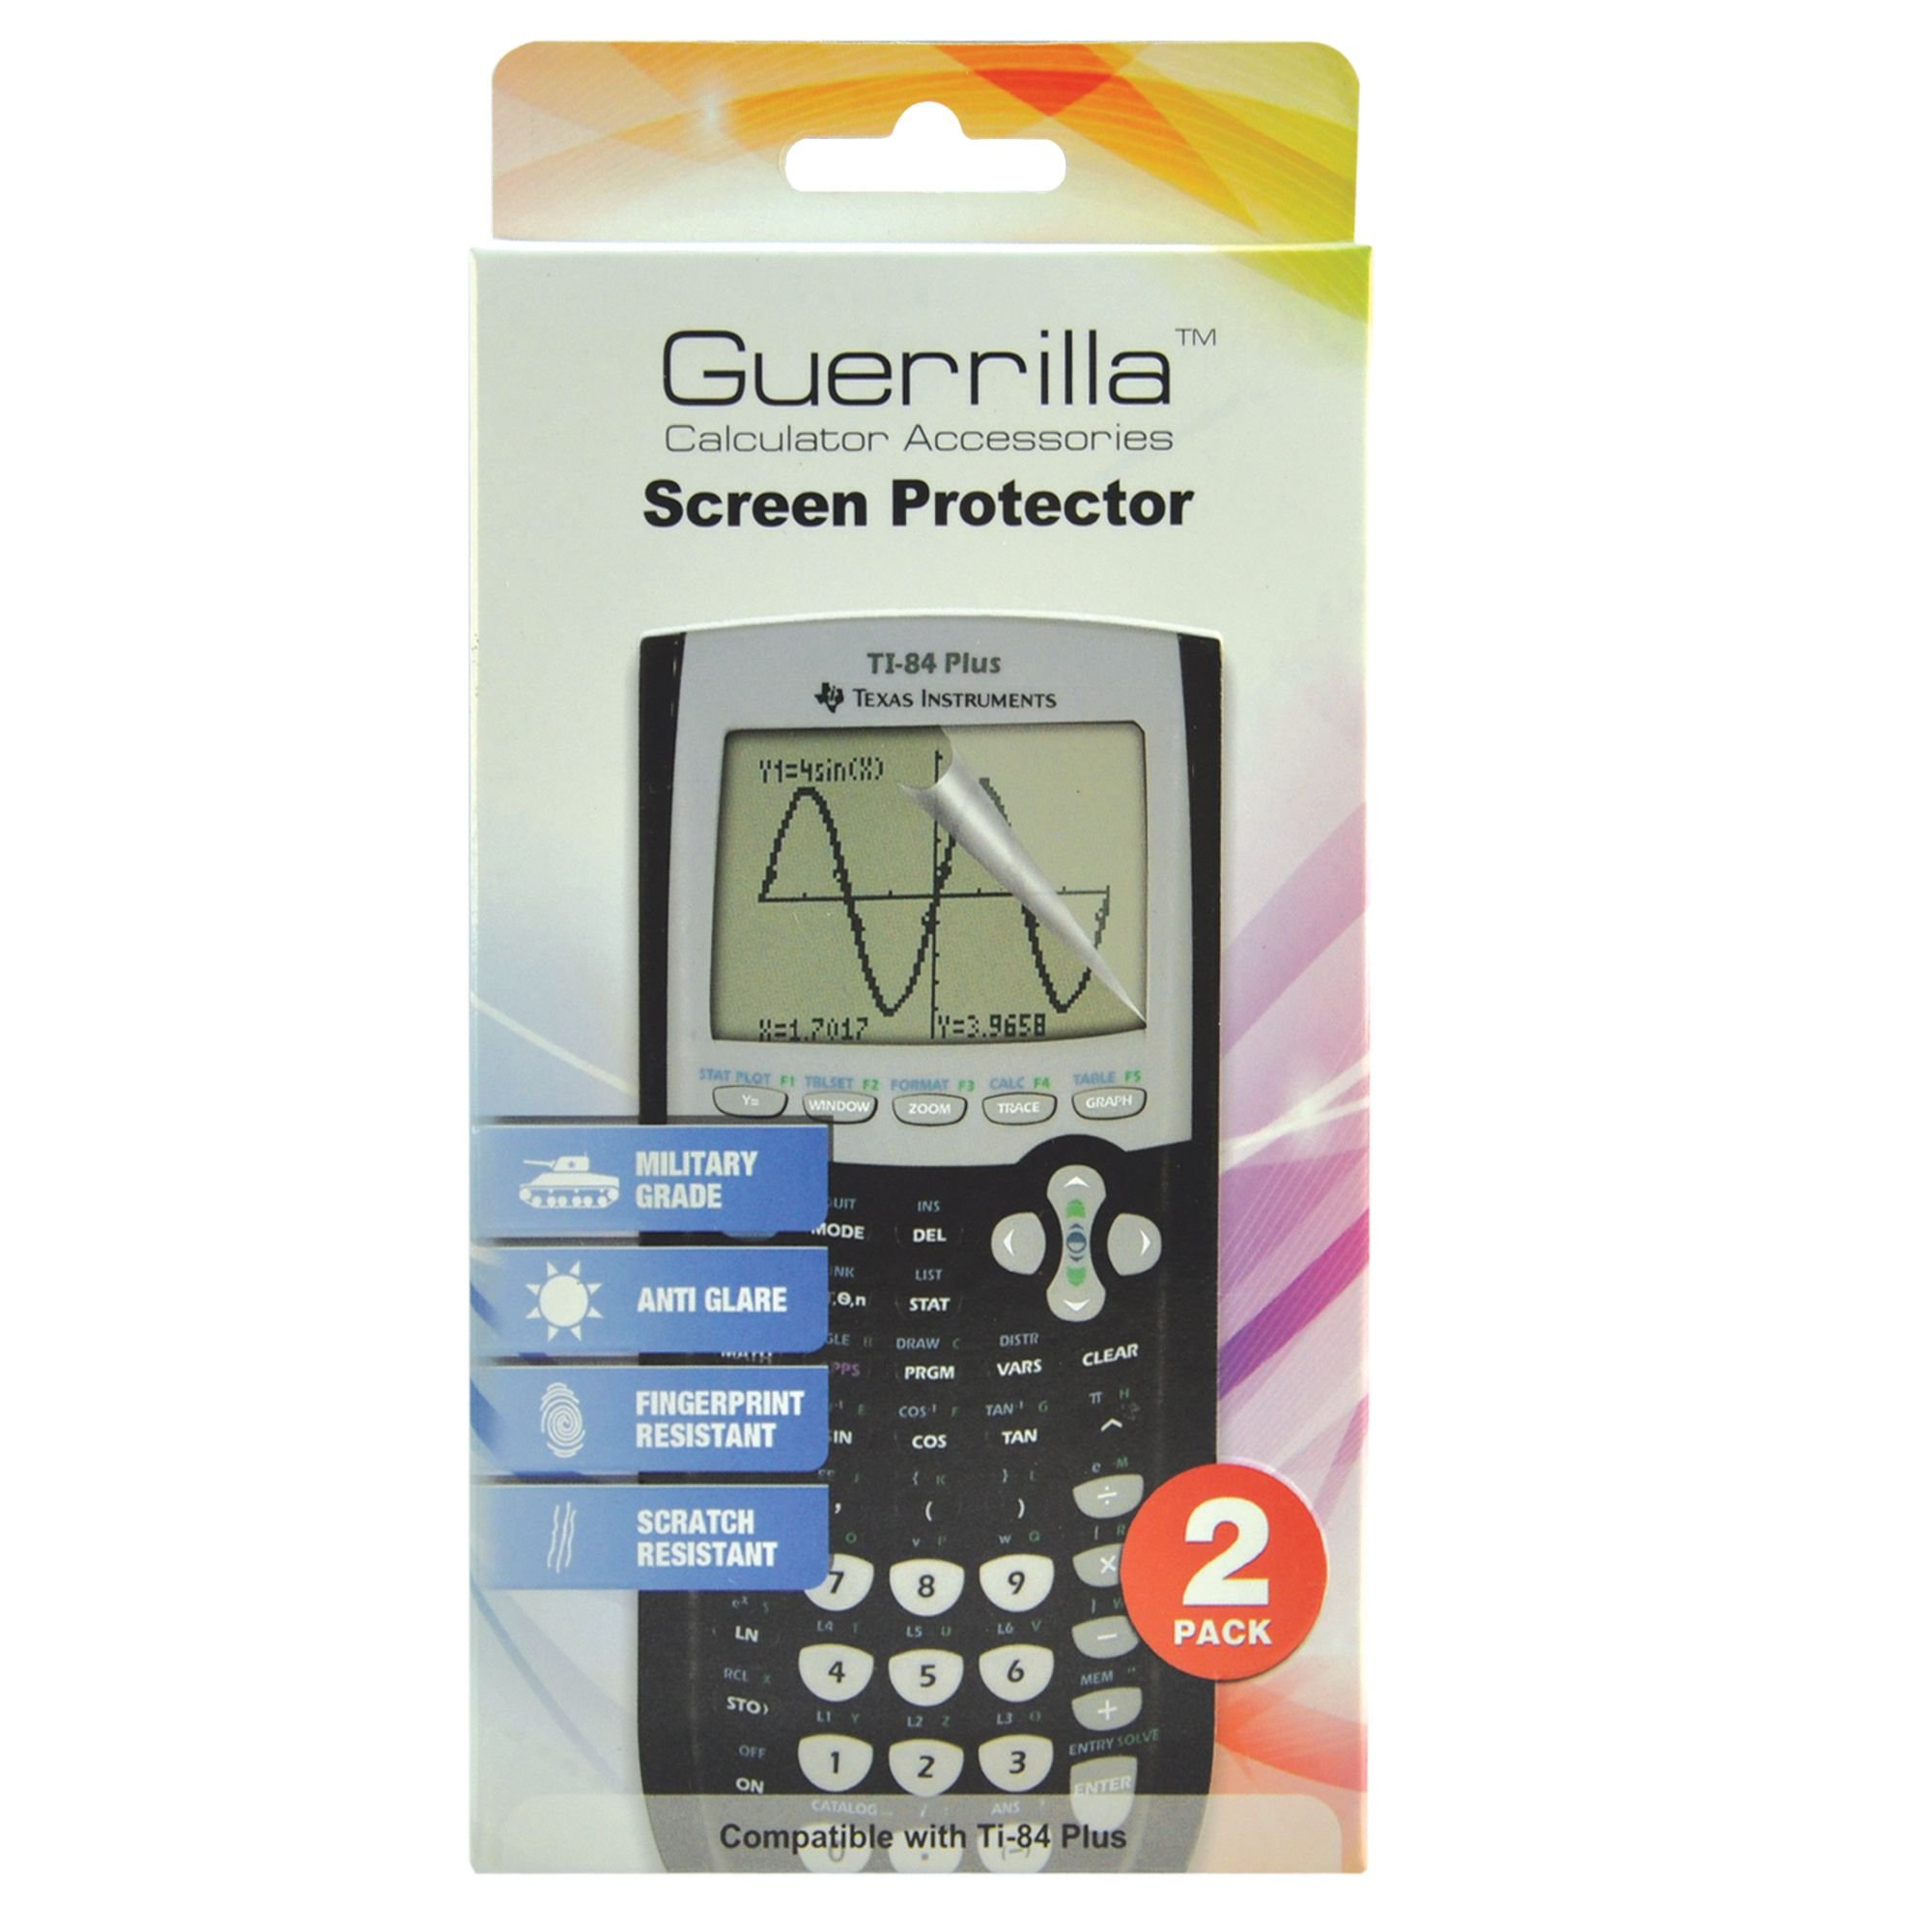 Guerrilla Military Grade Screen Protector 2- Pack For Texas Instruments TI 84 Plus Graphing Calculator